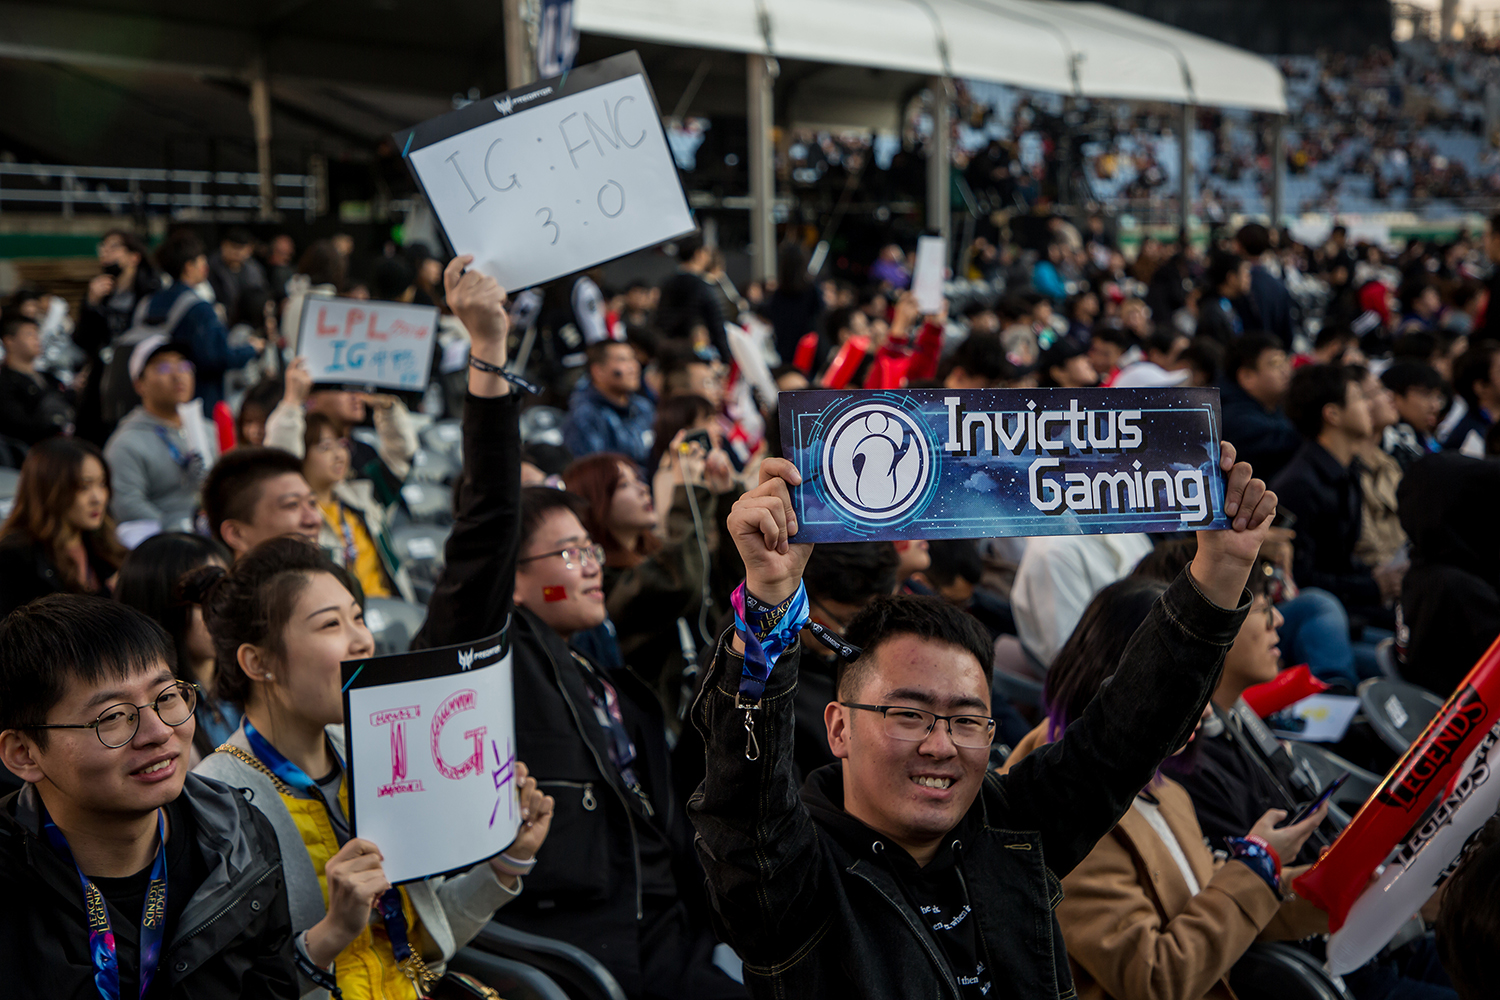 Fans waiting for the 2018 League of Legends World Championship Finals to begin, sponsored by Mastercard on November 3, 2018 in Incheon, South Korea.  Photo by Timo Verdeil/ESPAT Media for Mastercard